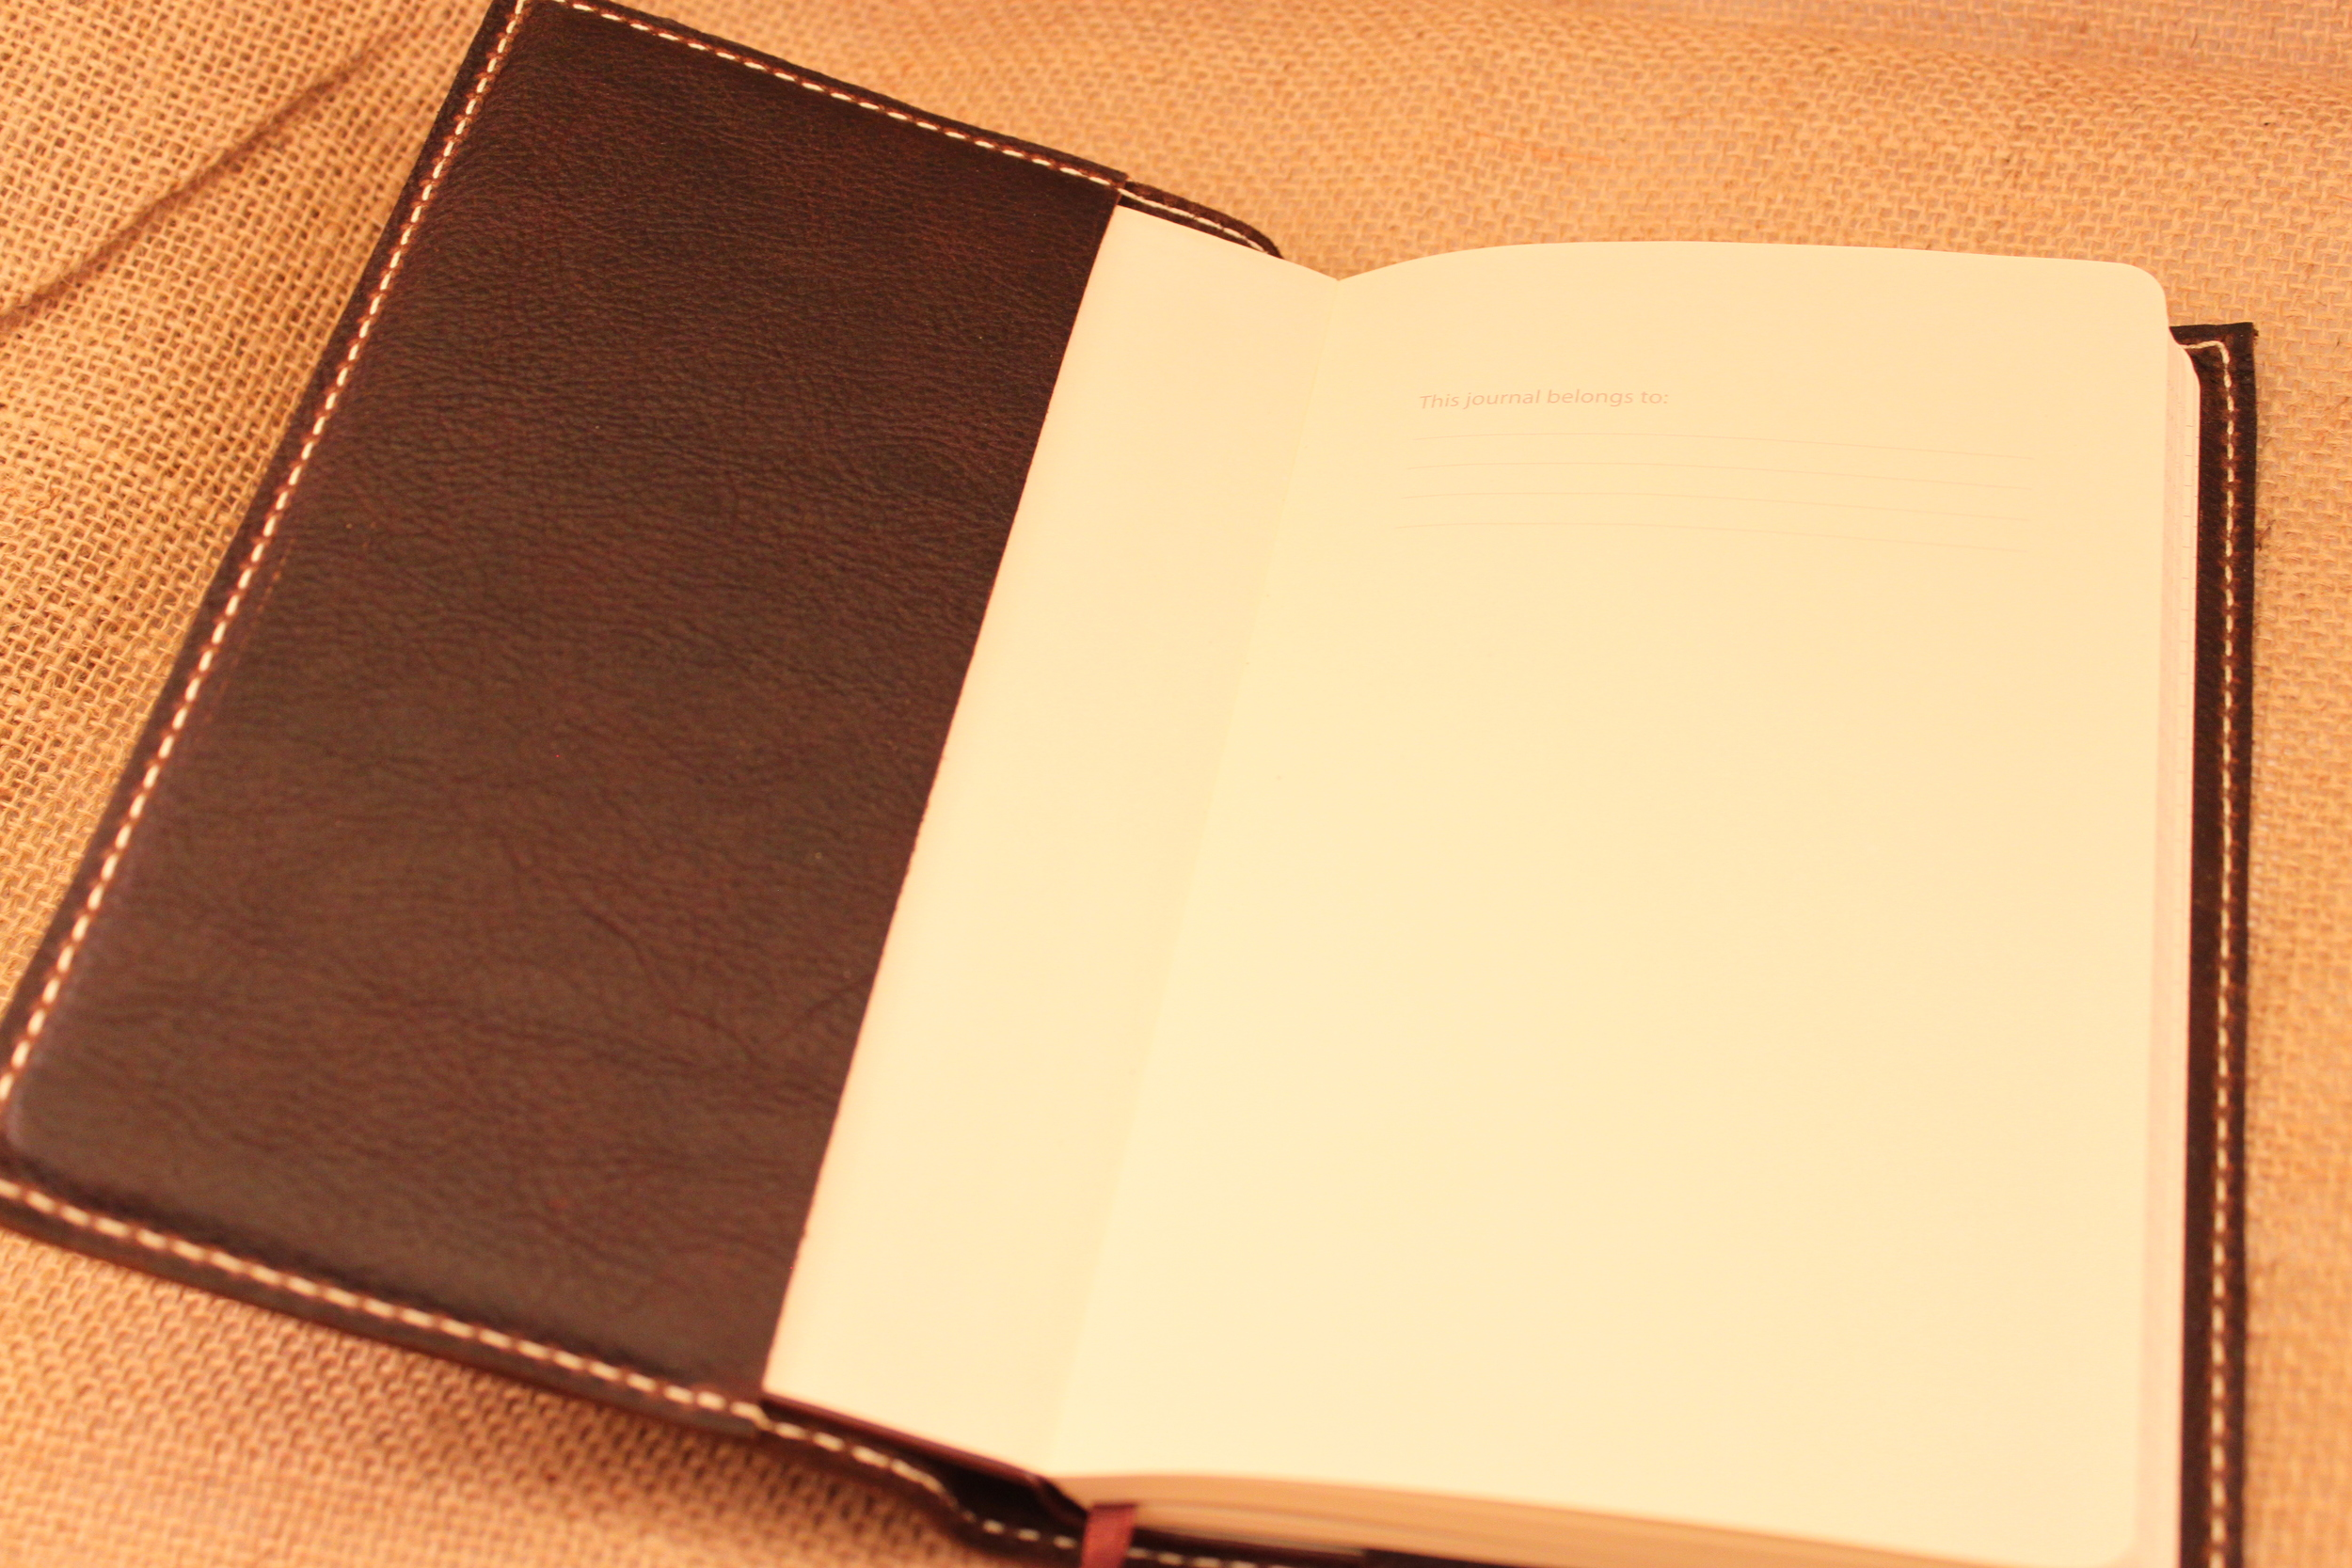 The Journals are a standard size, so it is easy to find a replacement to slip into the case after you fill one up.